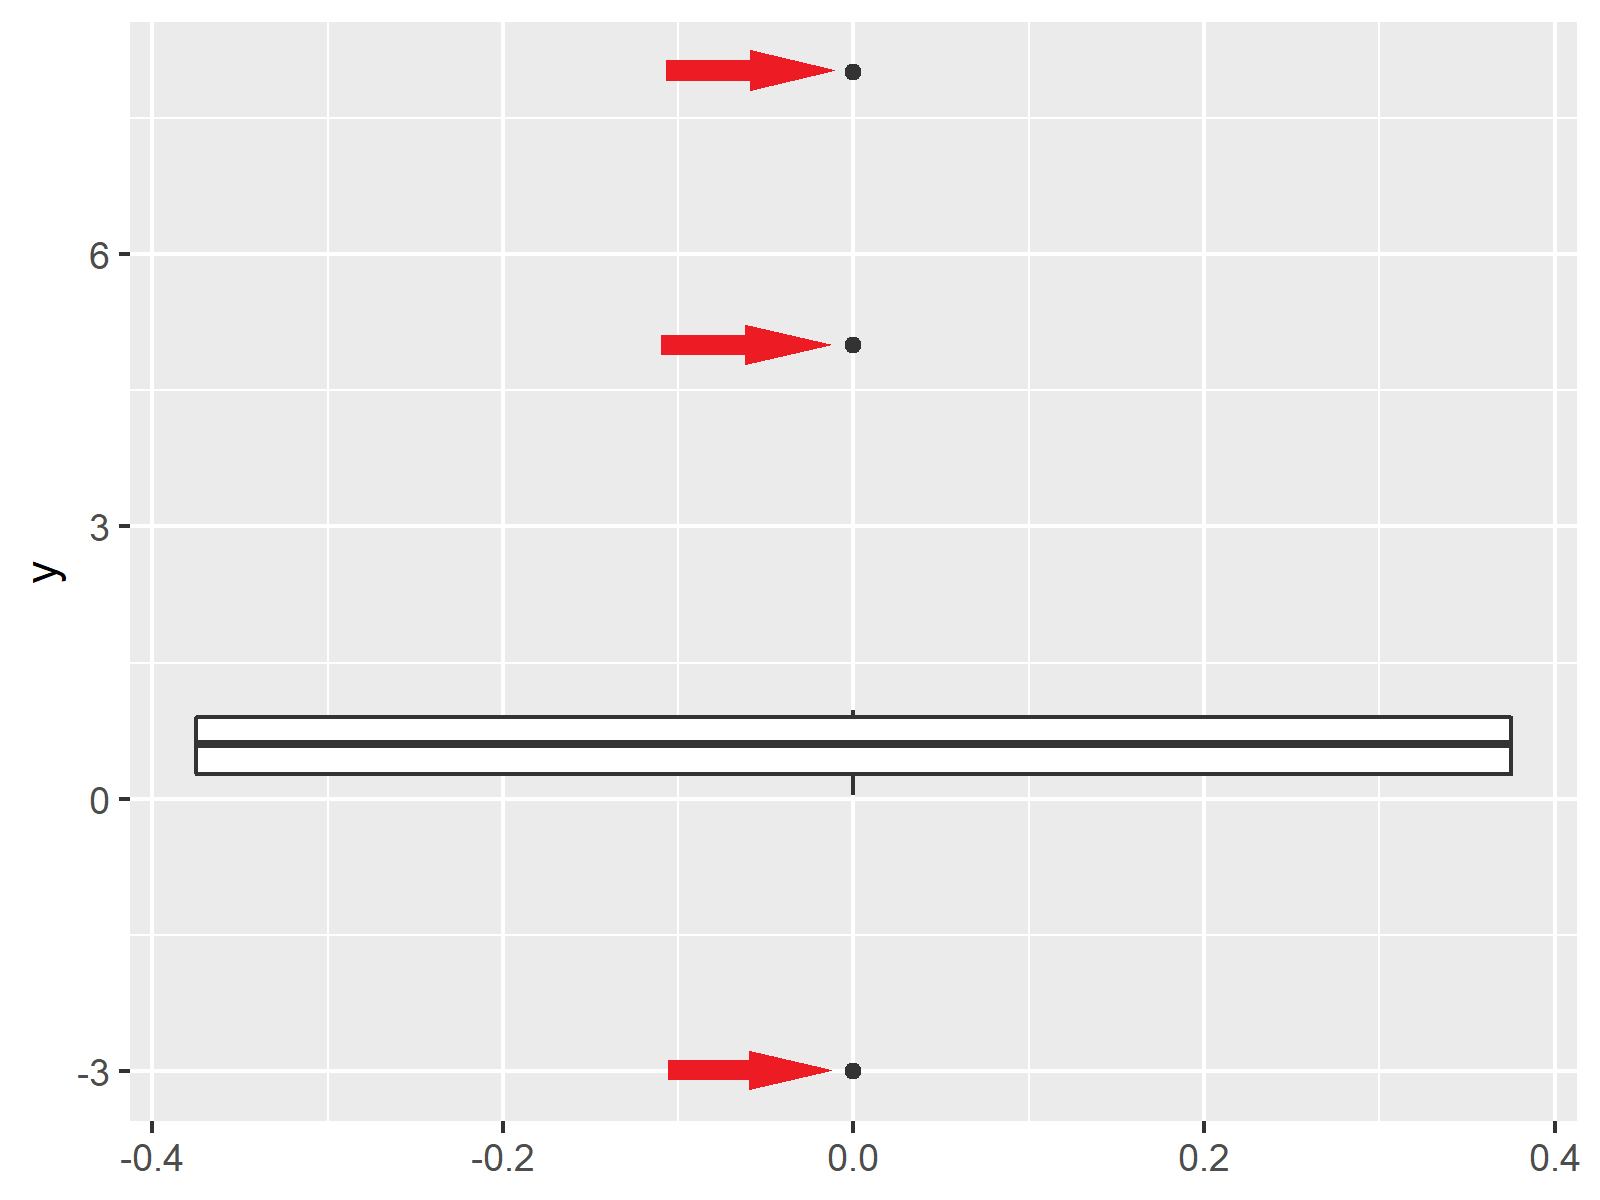 ggplot2 boxplot with outliers